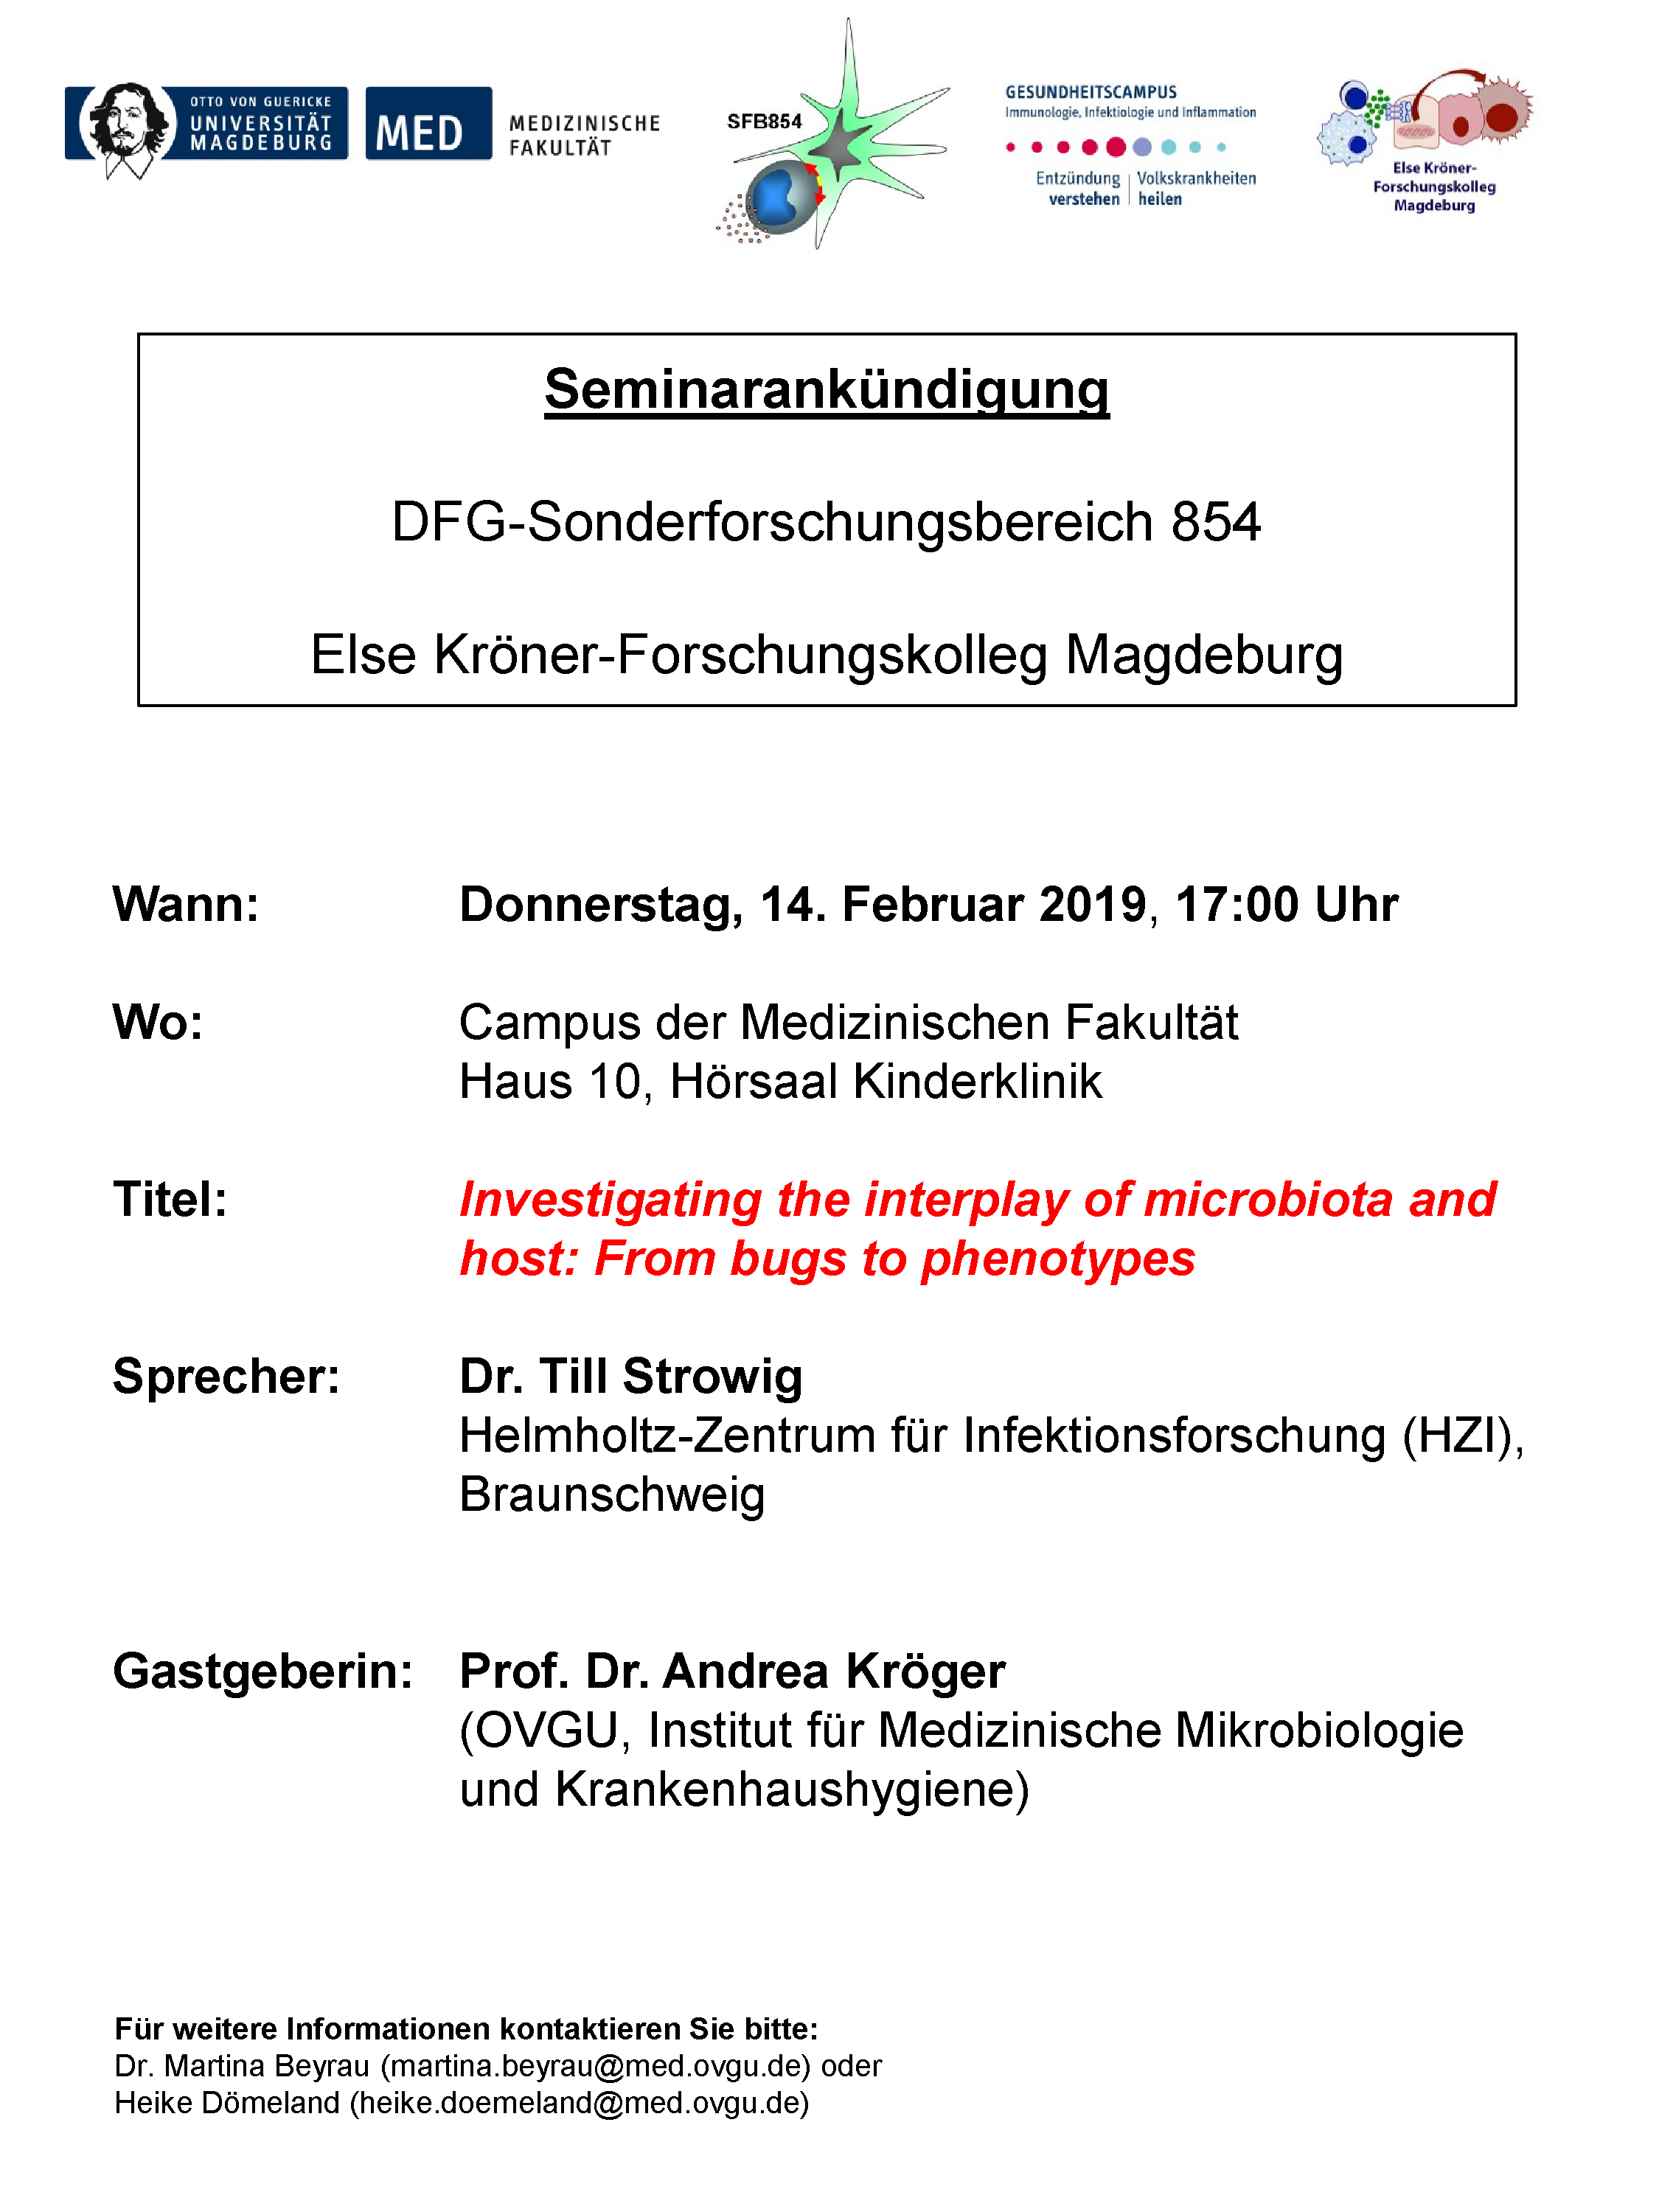 CRC 854 & EKF Seminar: Investigating the interplay of microbiota and host: From bugs to phenotypes @ Campus der Medical Fakulty House 10, Hörsaal Kinderklinik